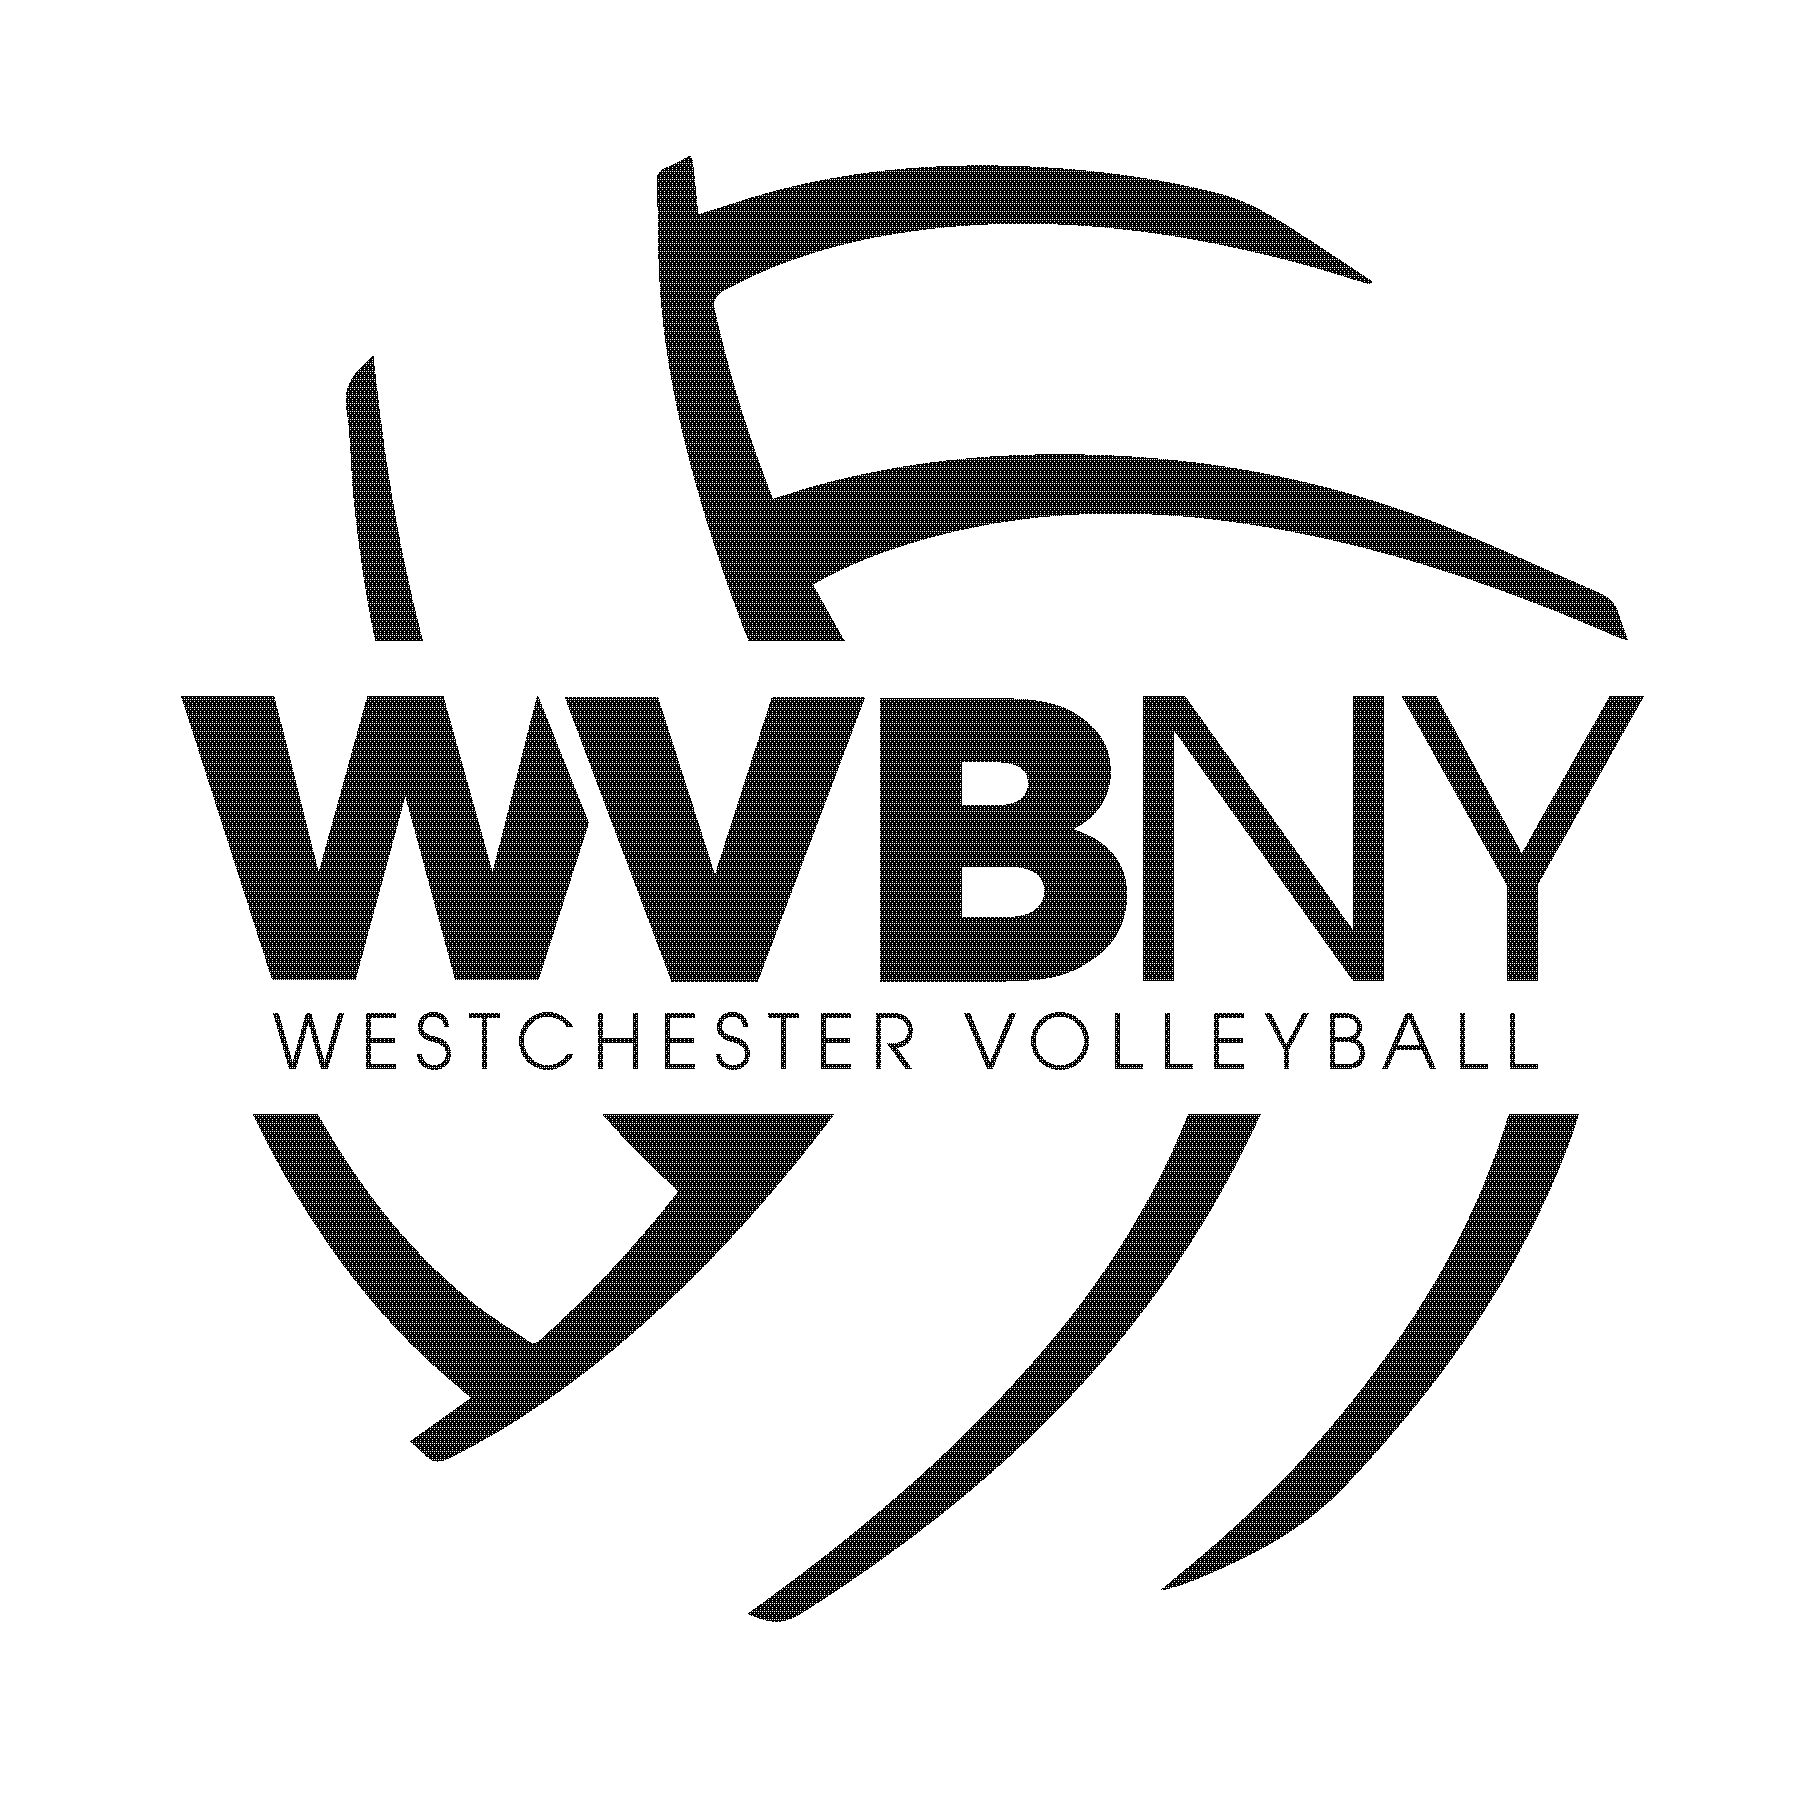 Westchester Volleyball NY